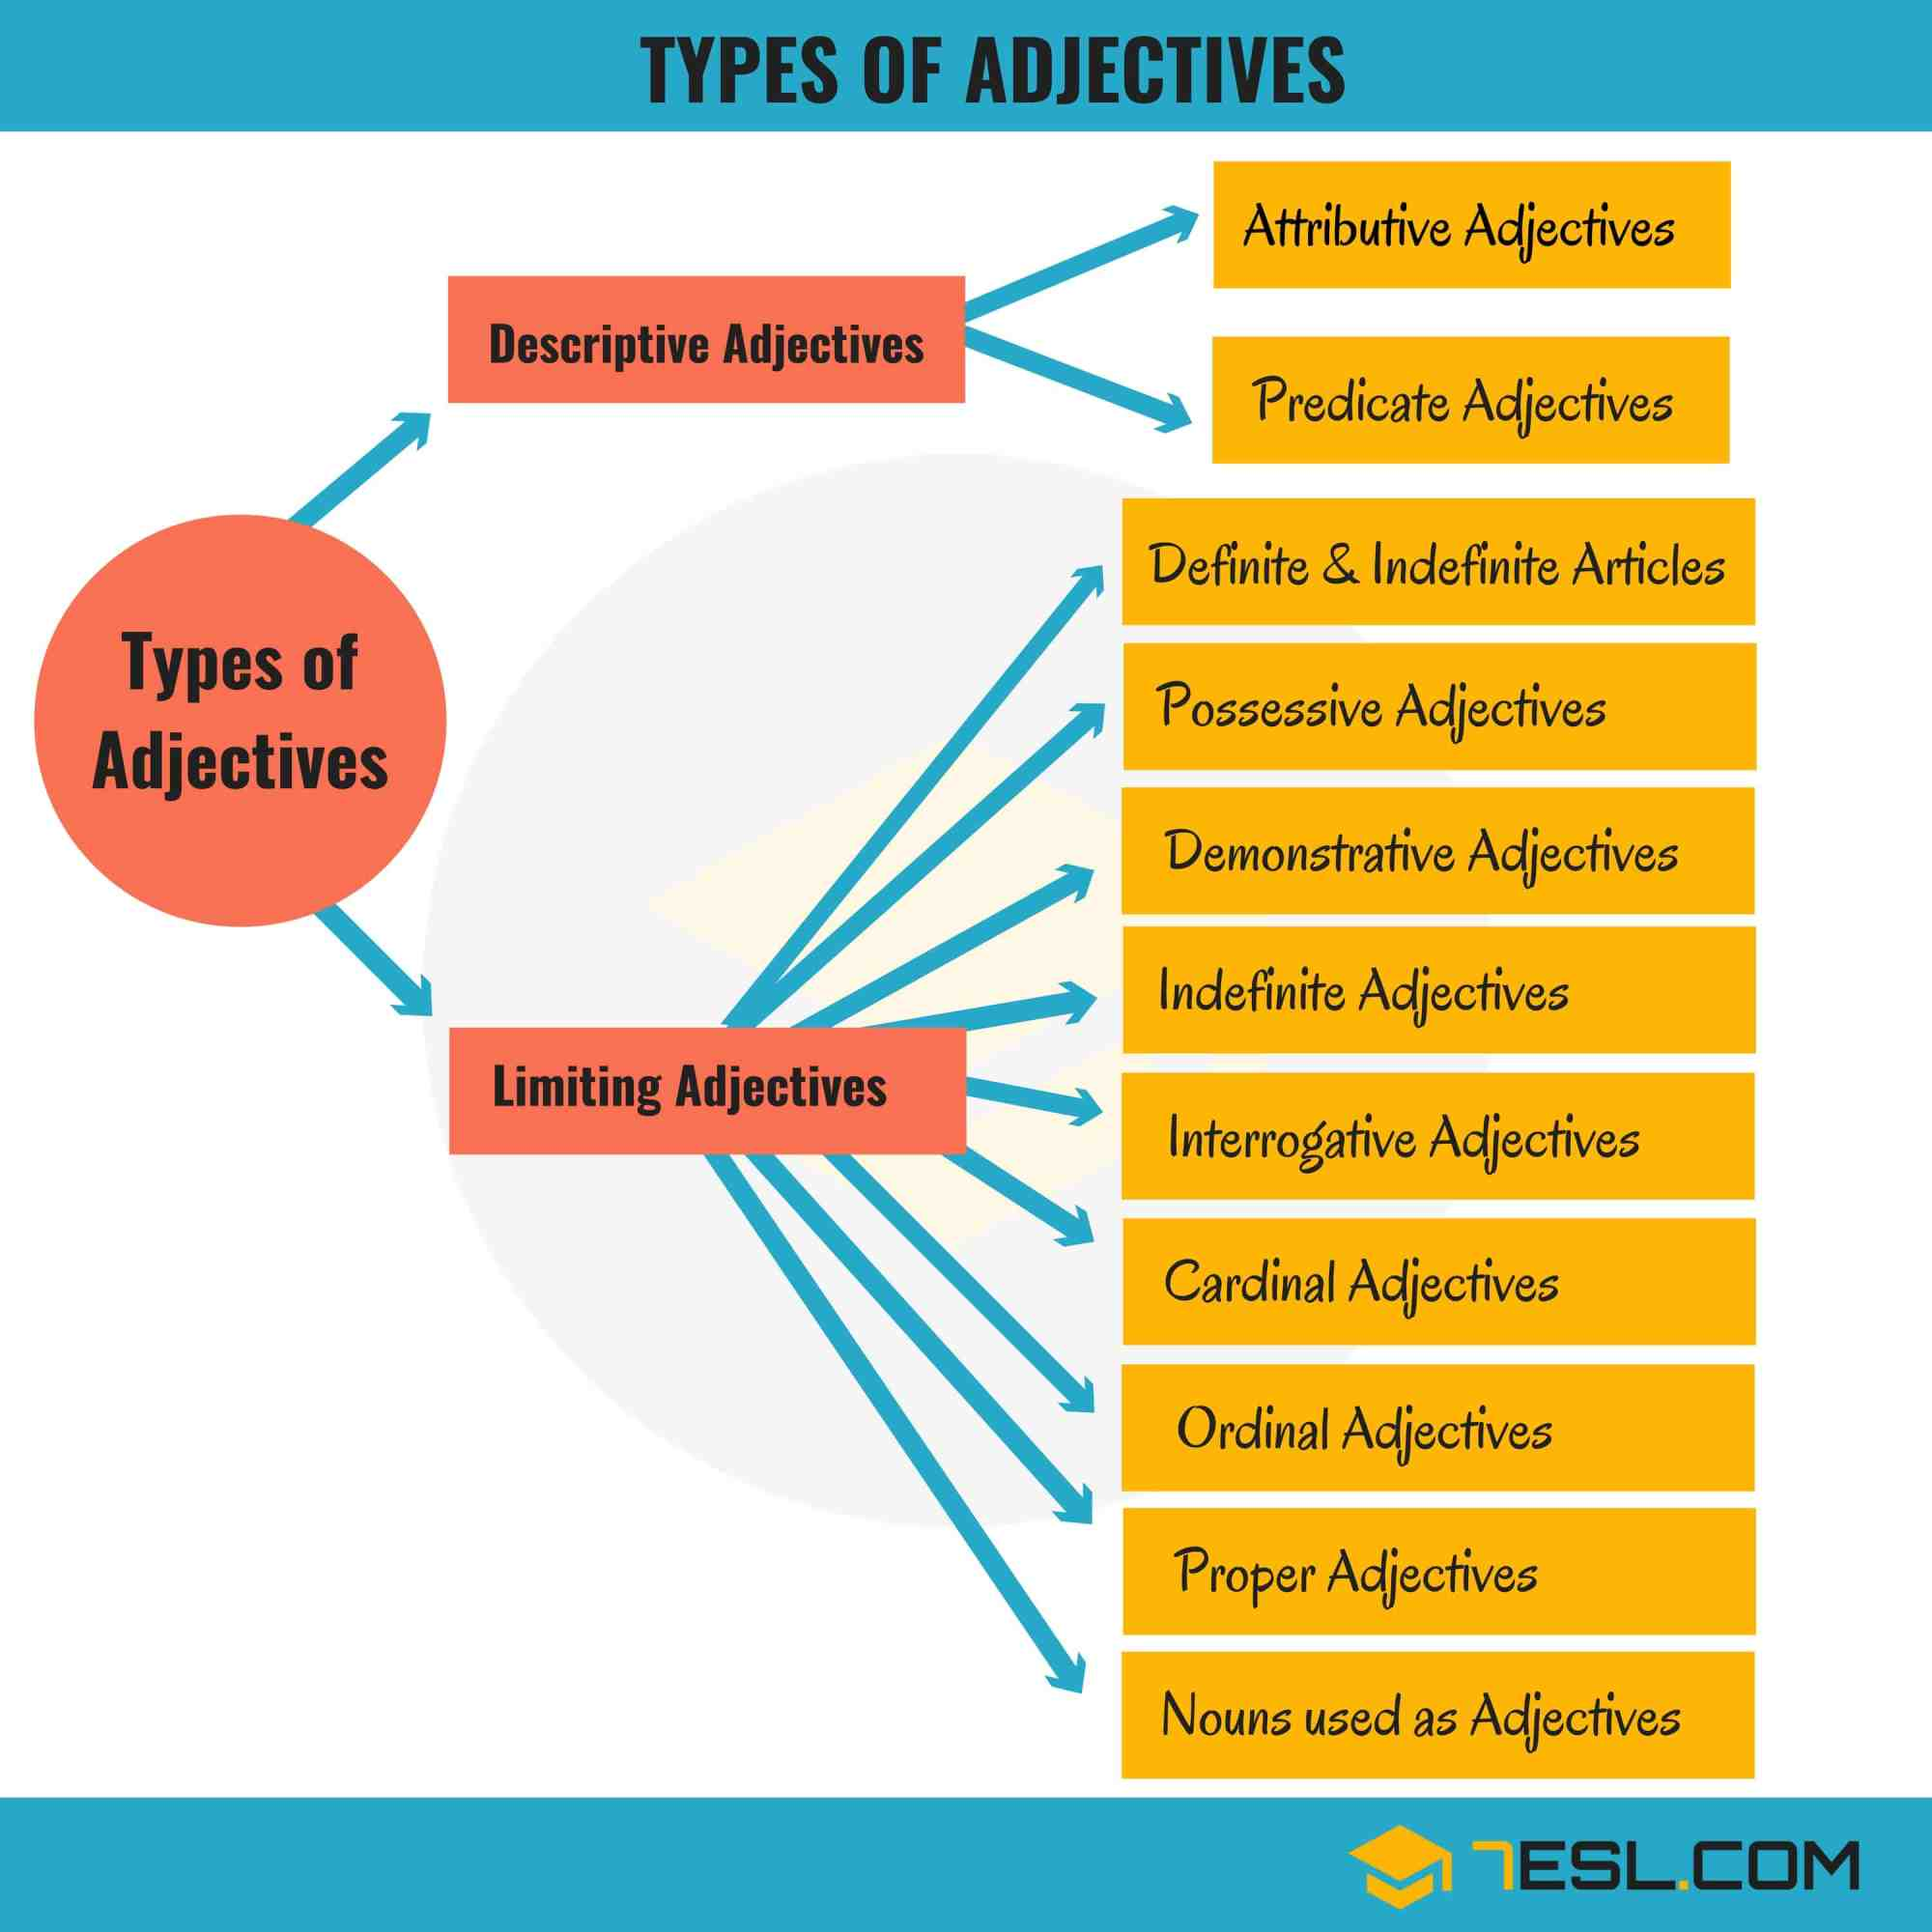 hight resolution of 11 Types of Adjectives Used in English (with Examples) • 7ESL